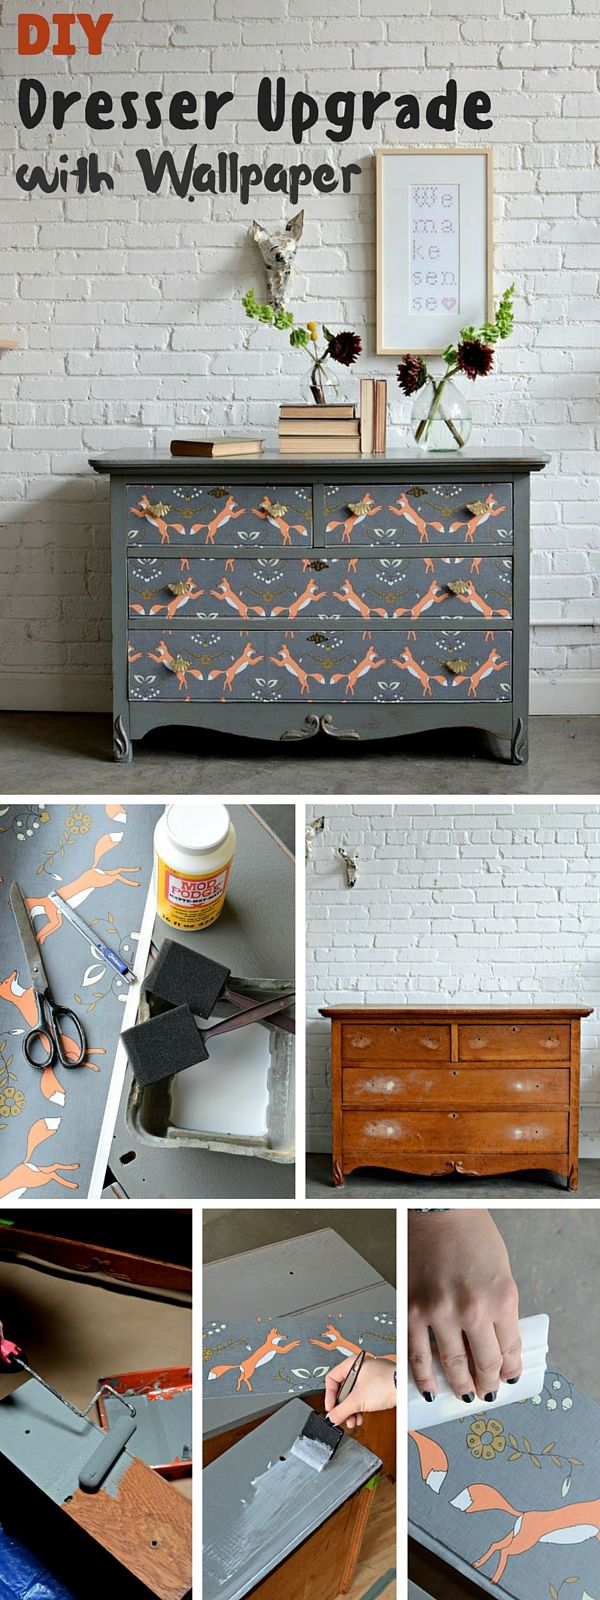 294 best decoupage projects images on pinterest home crafts and 12 clever diy home decor ideas for a quick fix